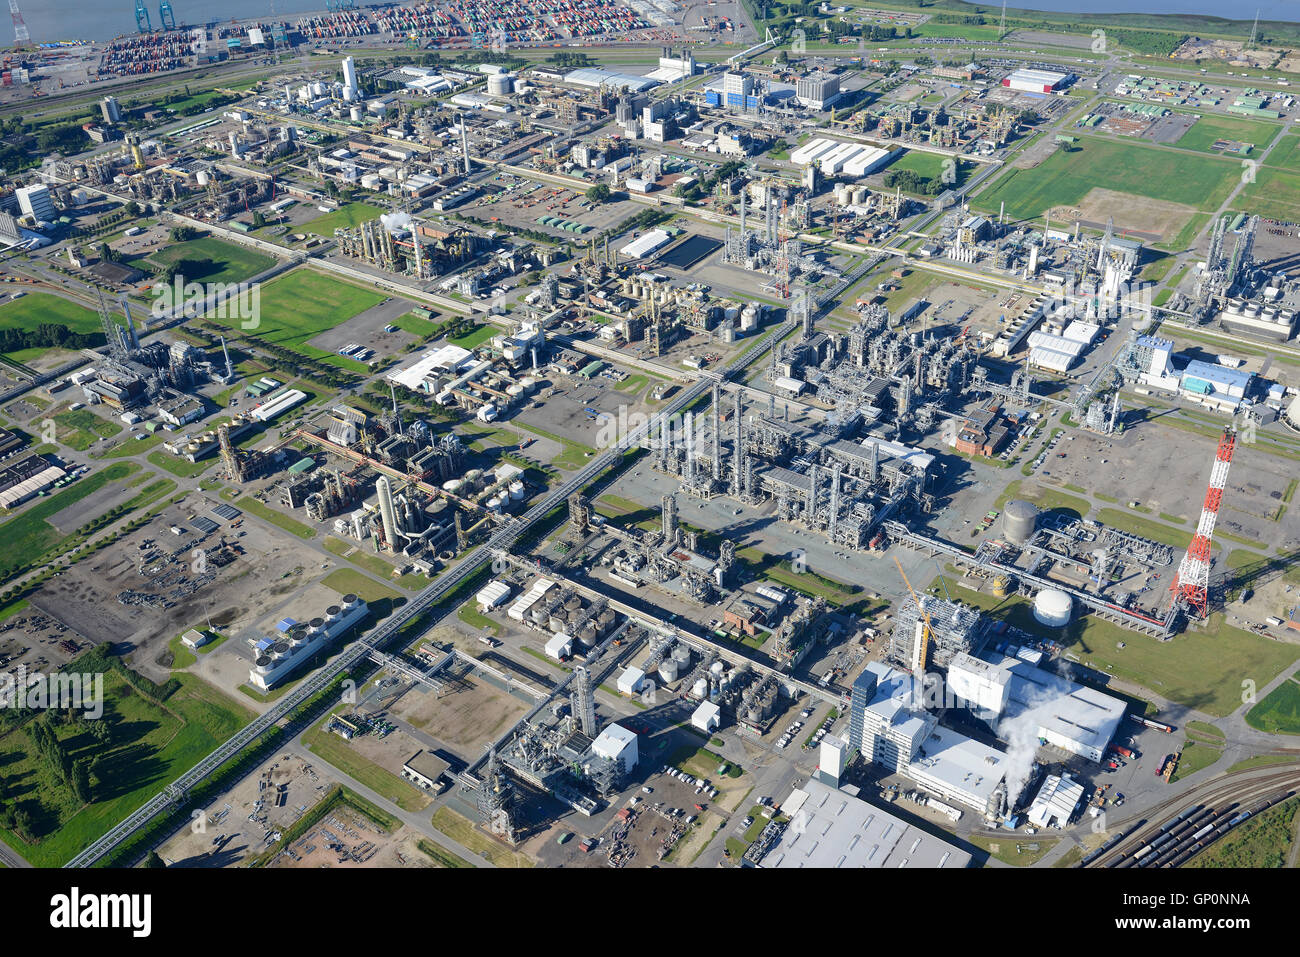 CHEMICAL PRODUCTION SITE OF BASF ANTWERPEN (aerial view). Antwerp Harbor, Belgium. - Stock Image